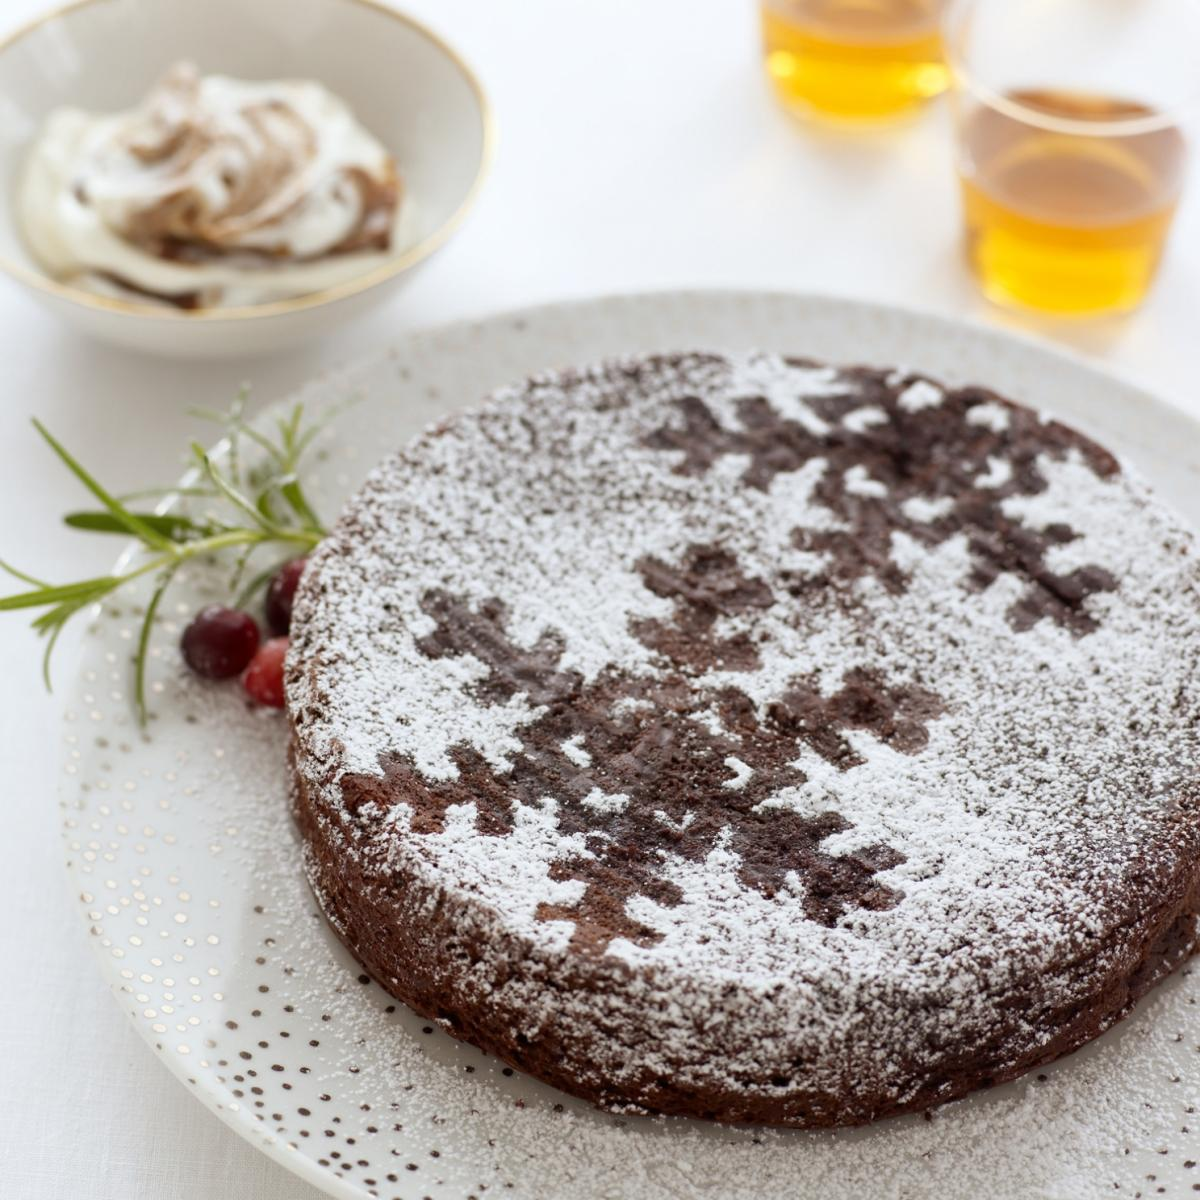 Happy fallen chocolate souffle with armagnac prunes